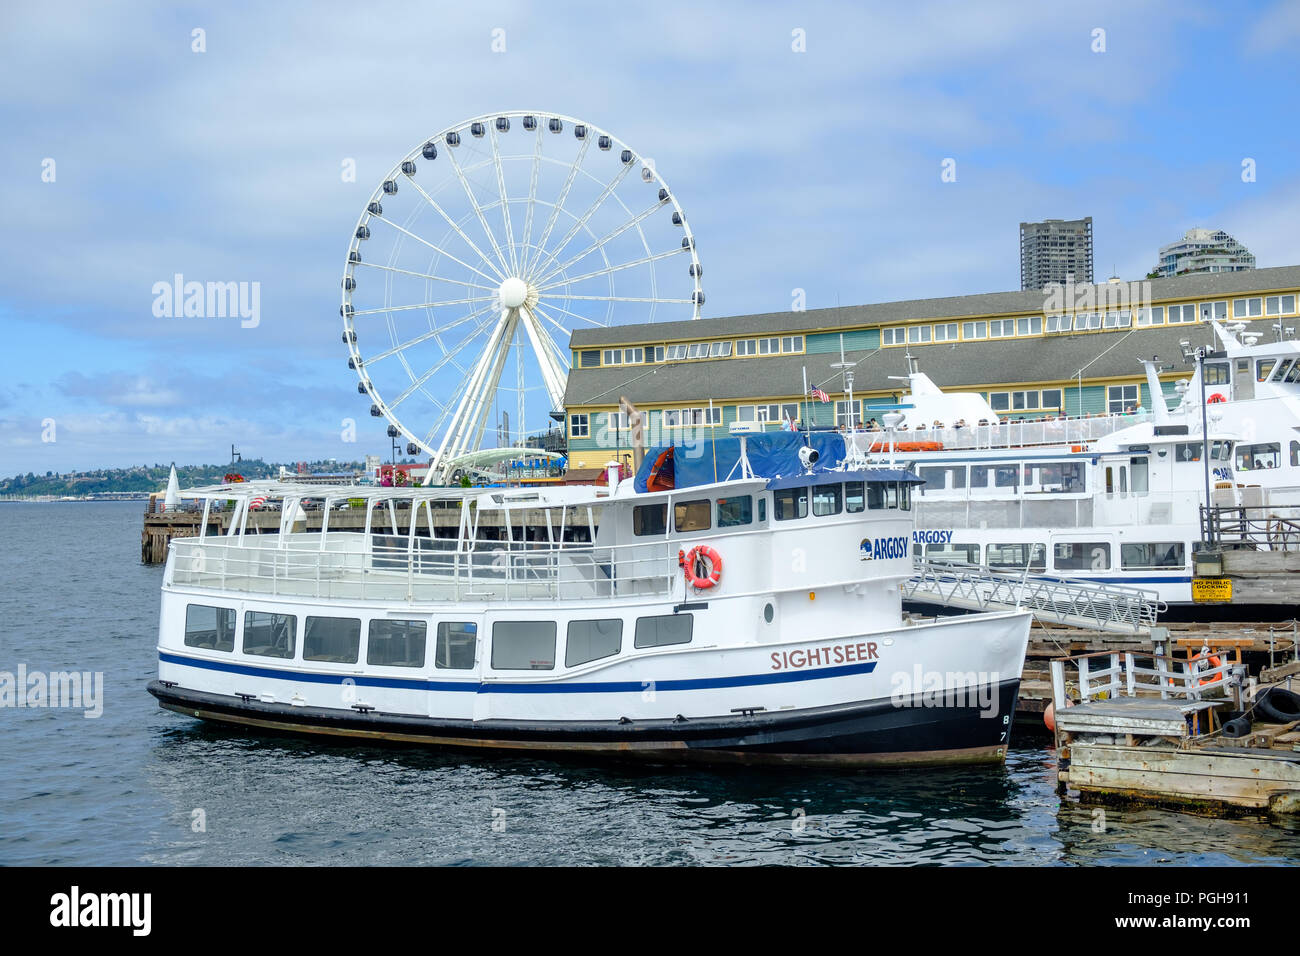 Sightseer boat on Seattle waterfront, USA - Stock Image